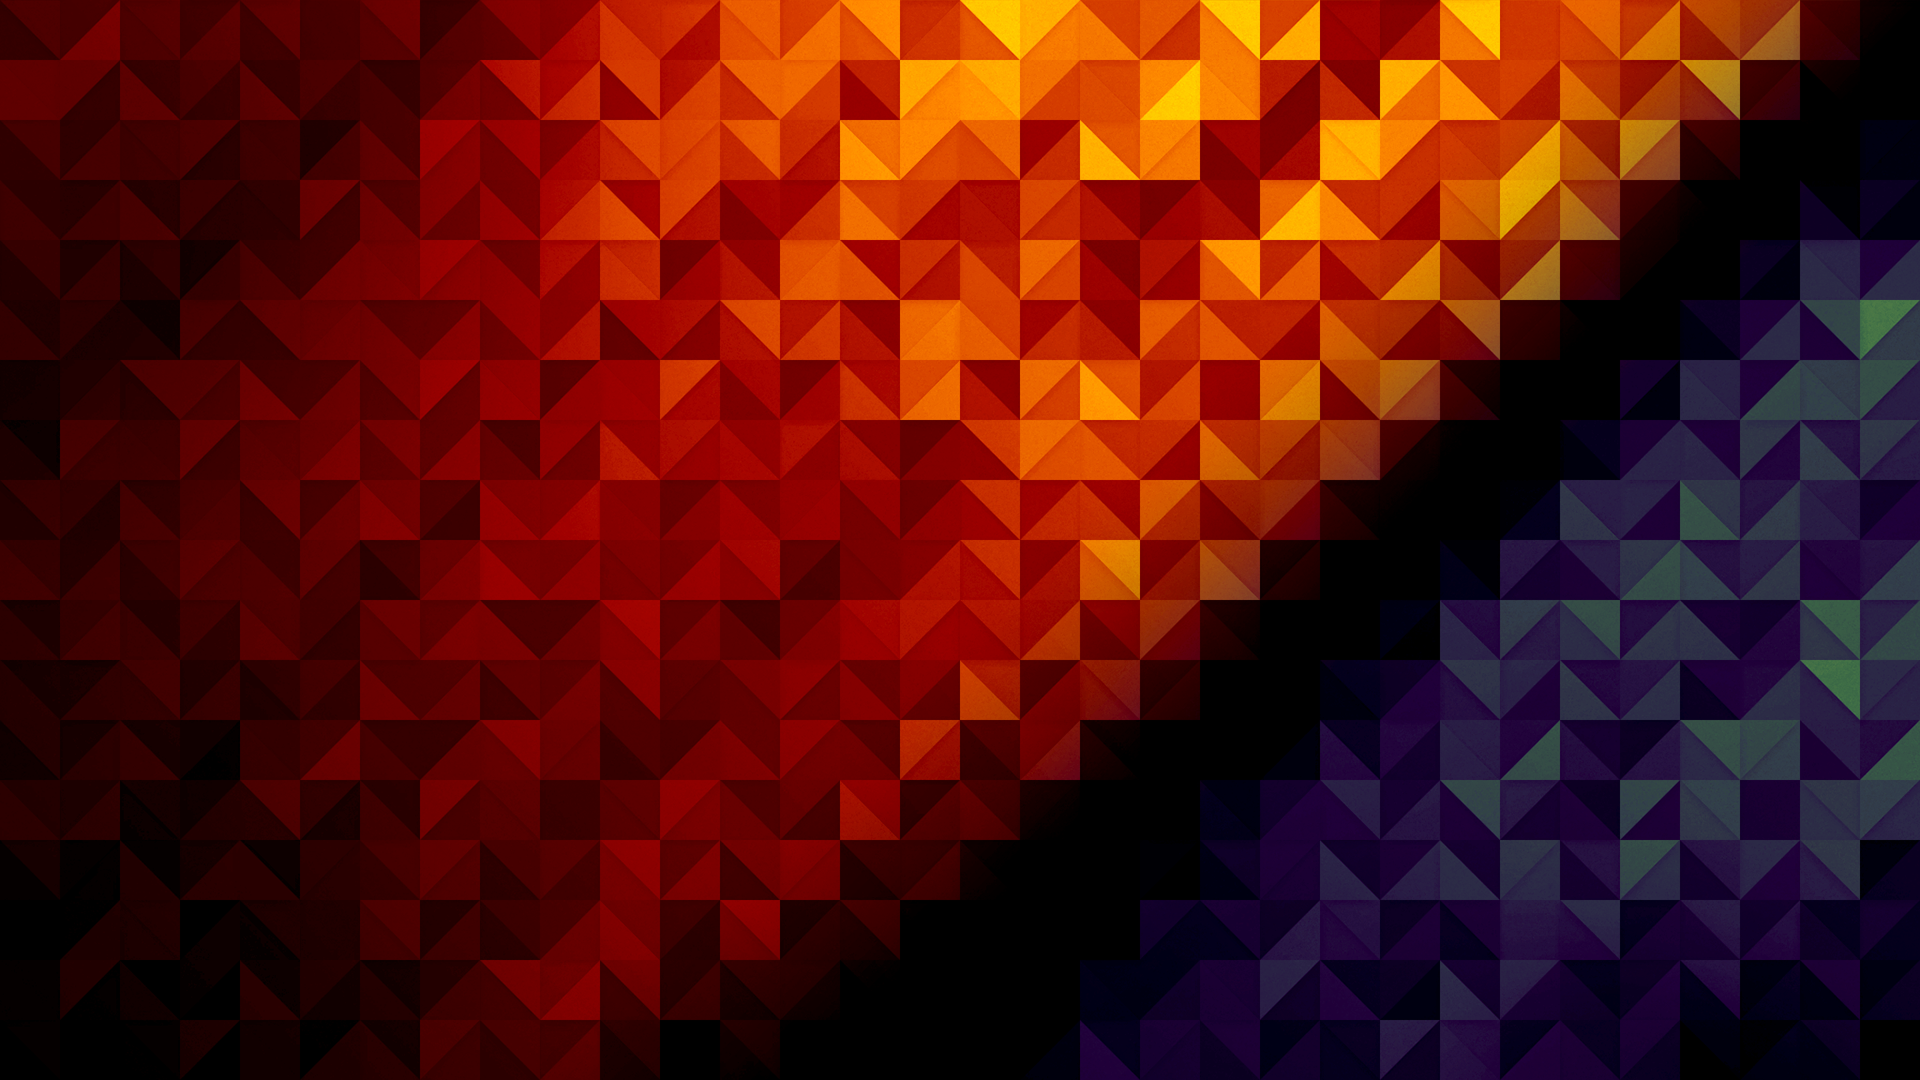 amazing digital backgrounds 30963 1920x1080 px ~ hdwallsource